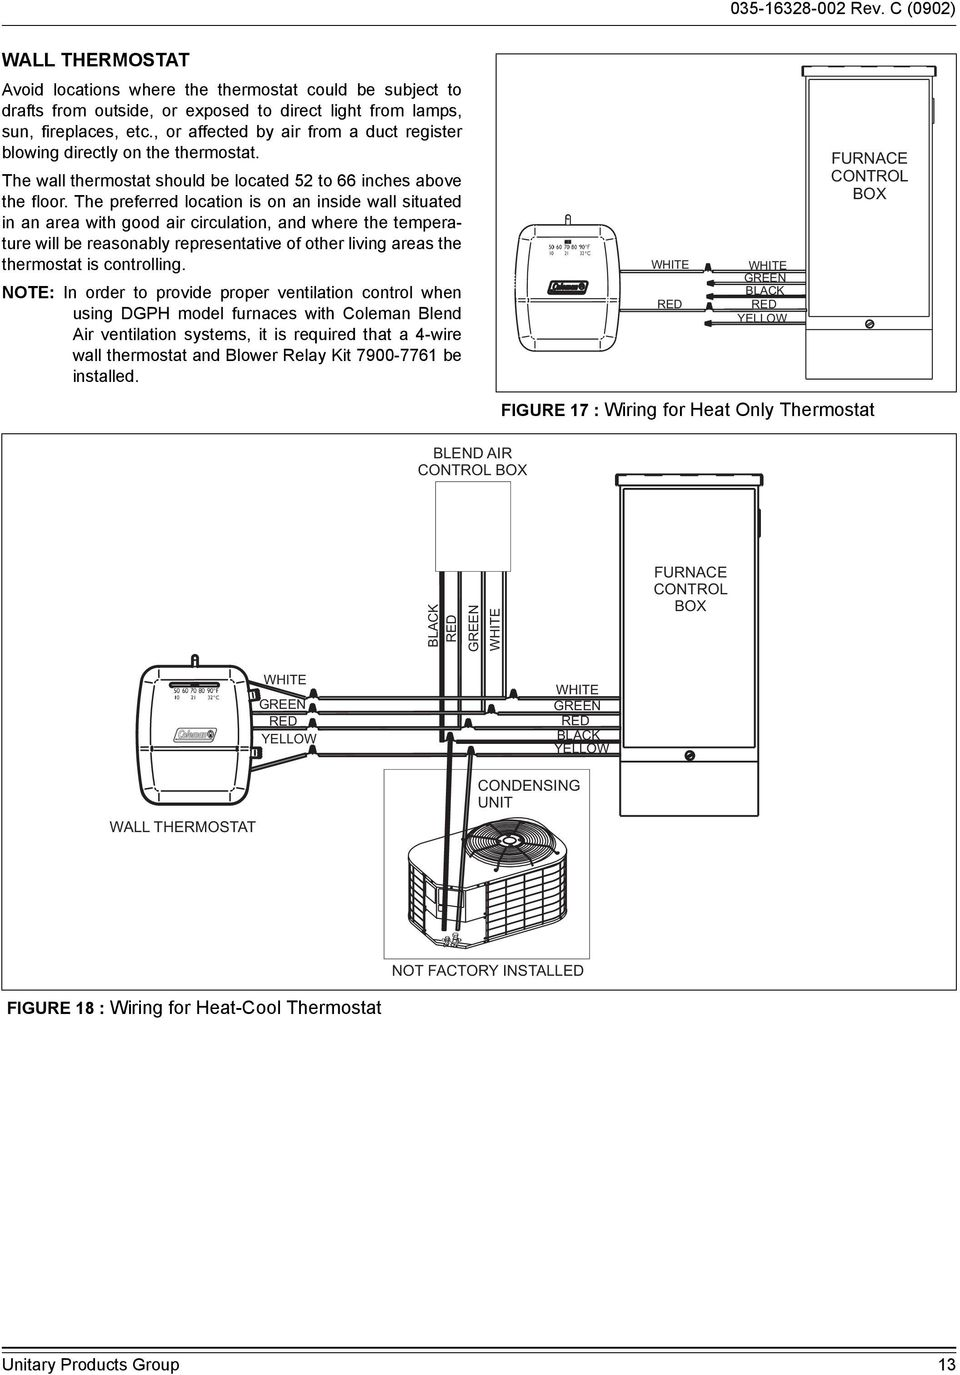 Installation Instruction Pdf Propane Furnace Thermostat Wiring The Preferred Location Is On An Inside Wall Situated In Area With Good Air Circulation